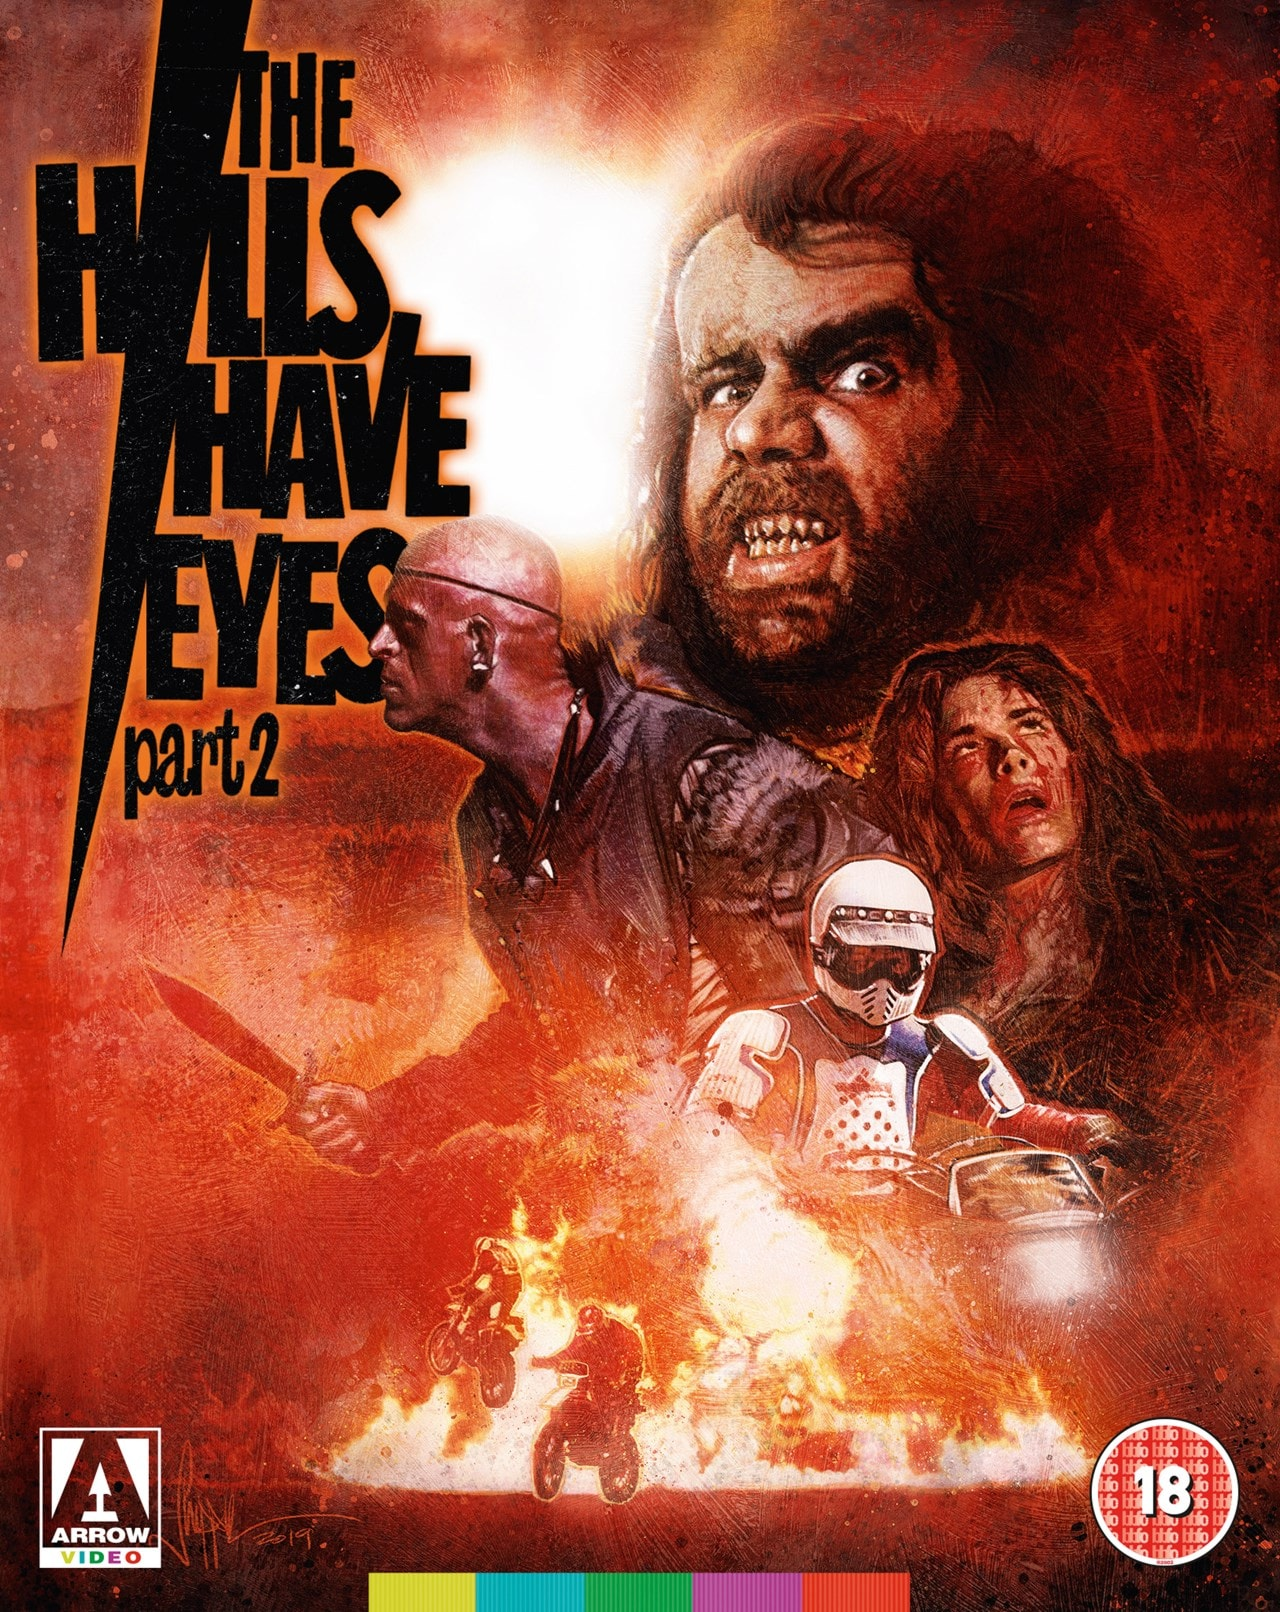 The Hills Have Eyes, Part 2 - 1